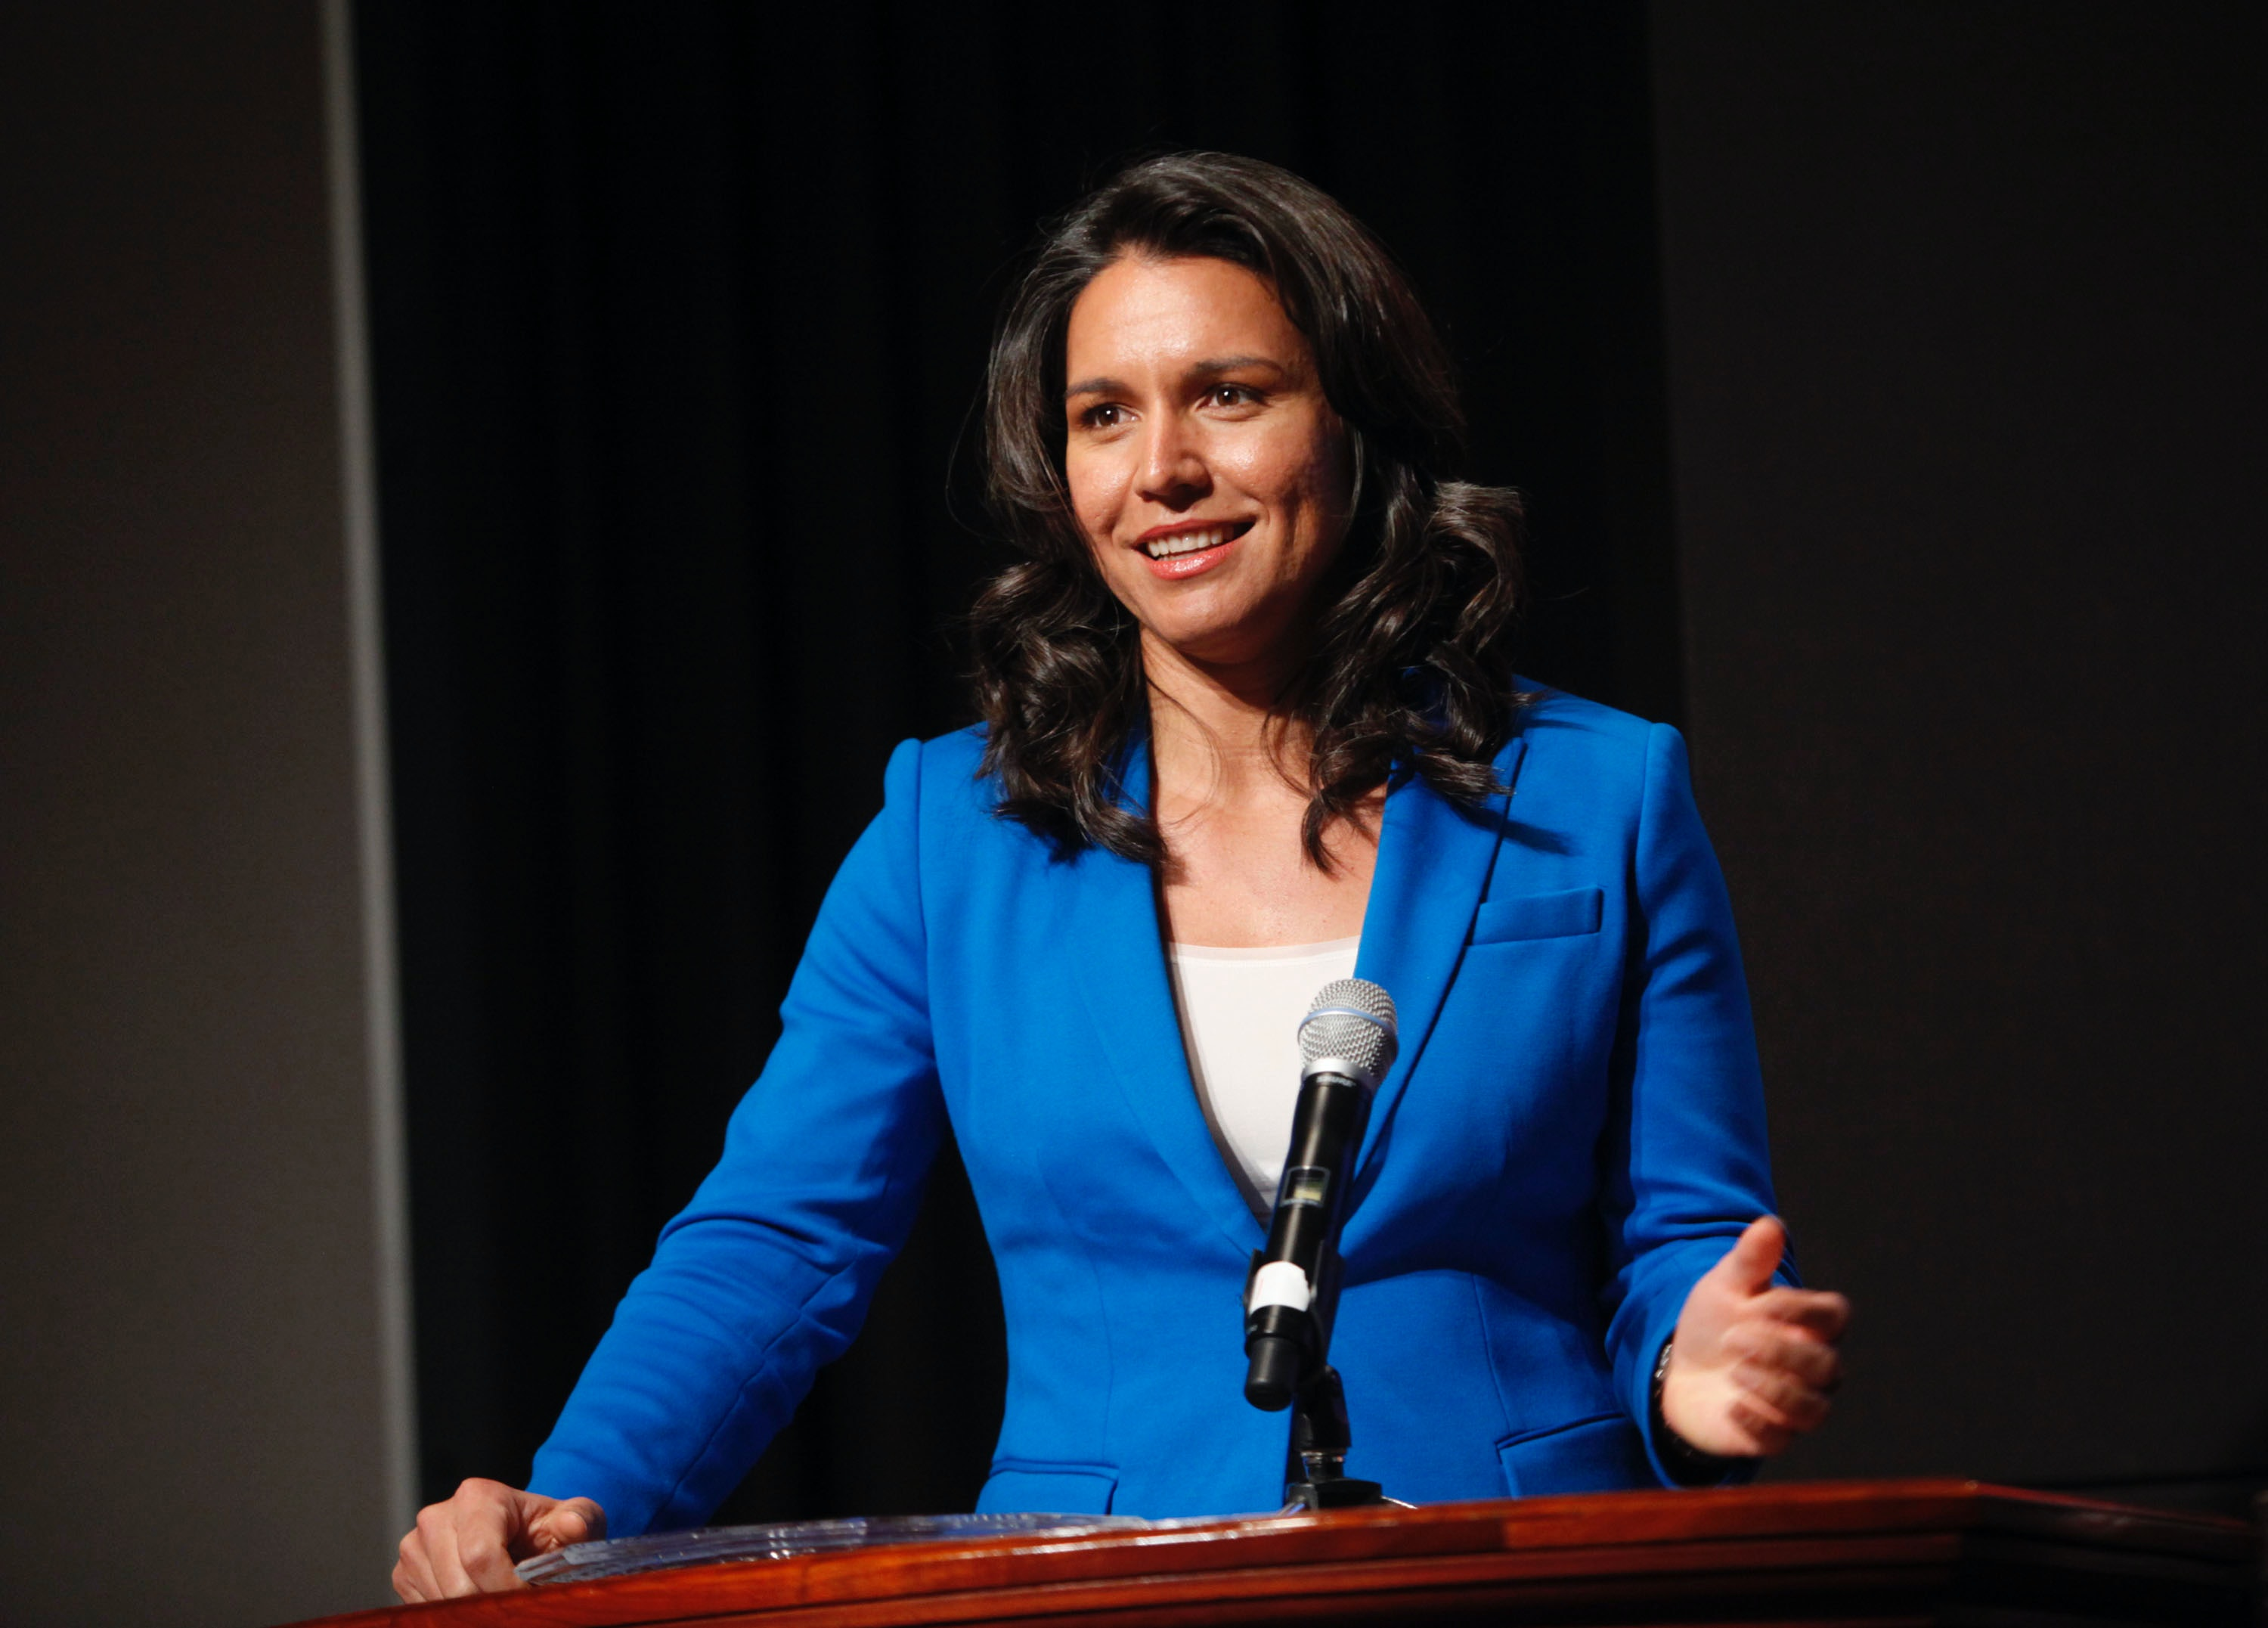 Rep. Tulsi Gabbard resigns as vice chair of DNC to endorse Sanders